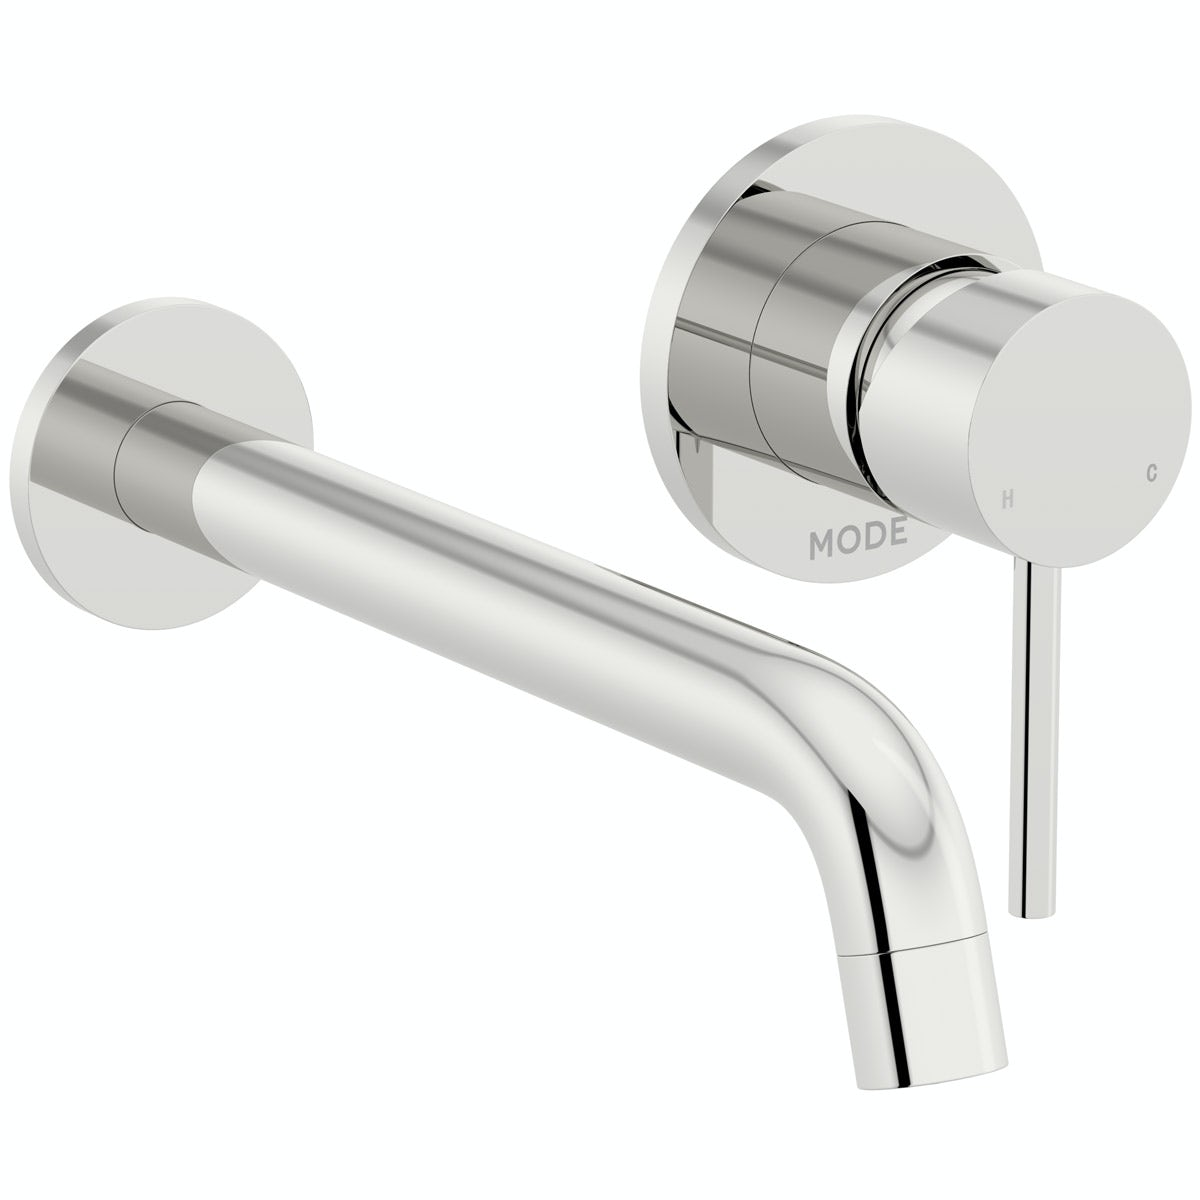 Mode Spencer round wall mounted basin mixer tap